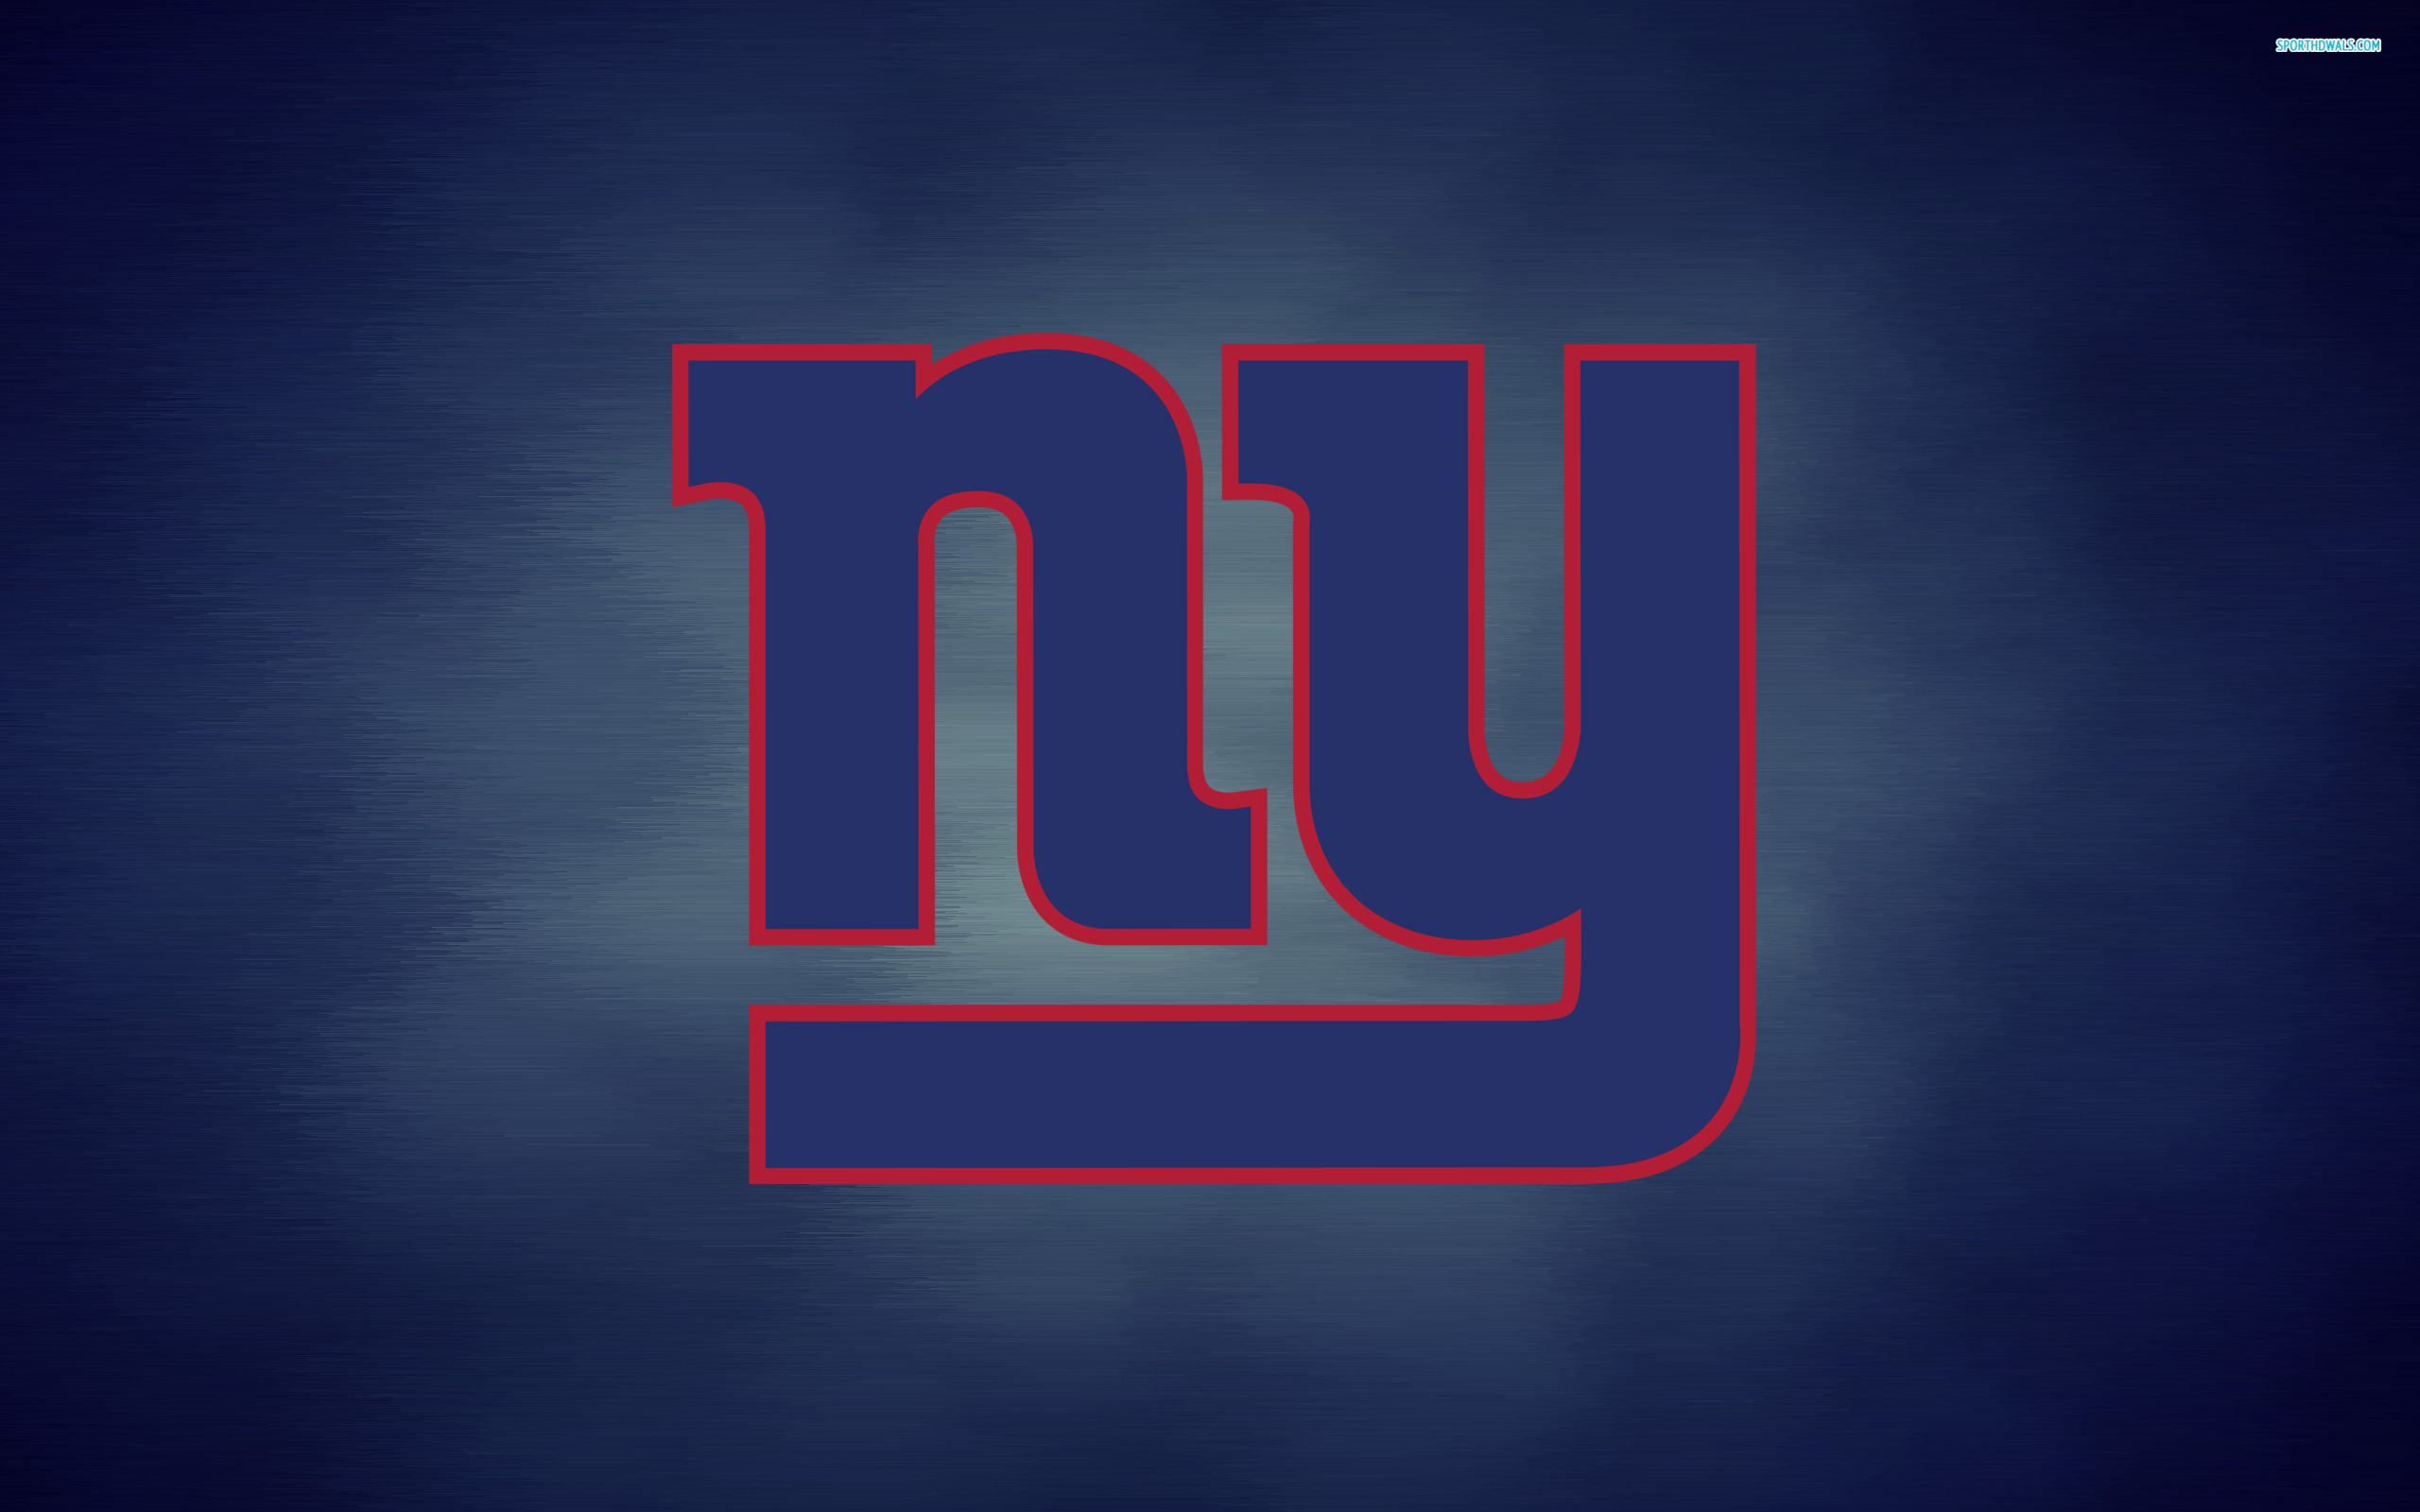 New York Giants Wallpaper Hd Background Topwallpaperdesign 2560x1600px